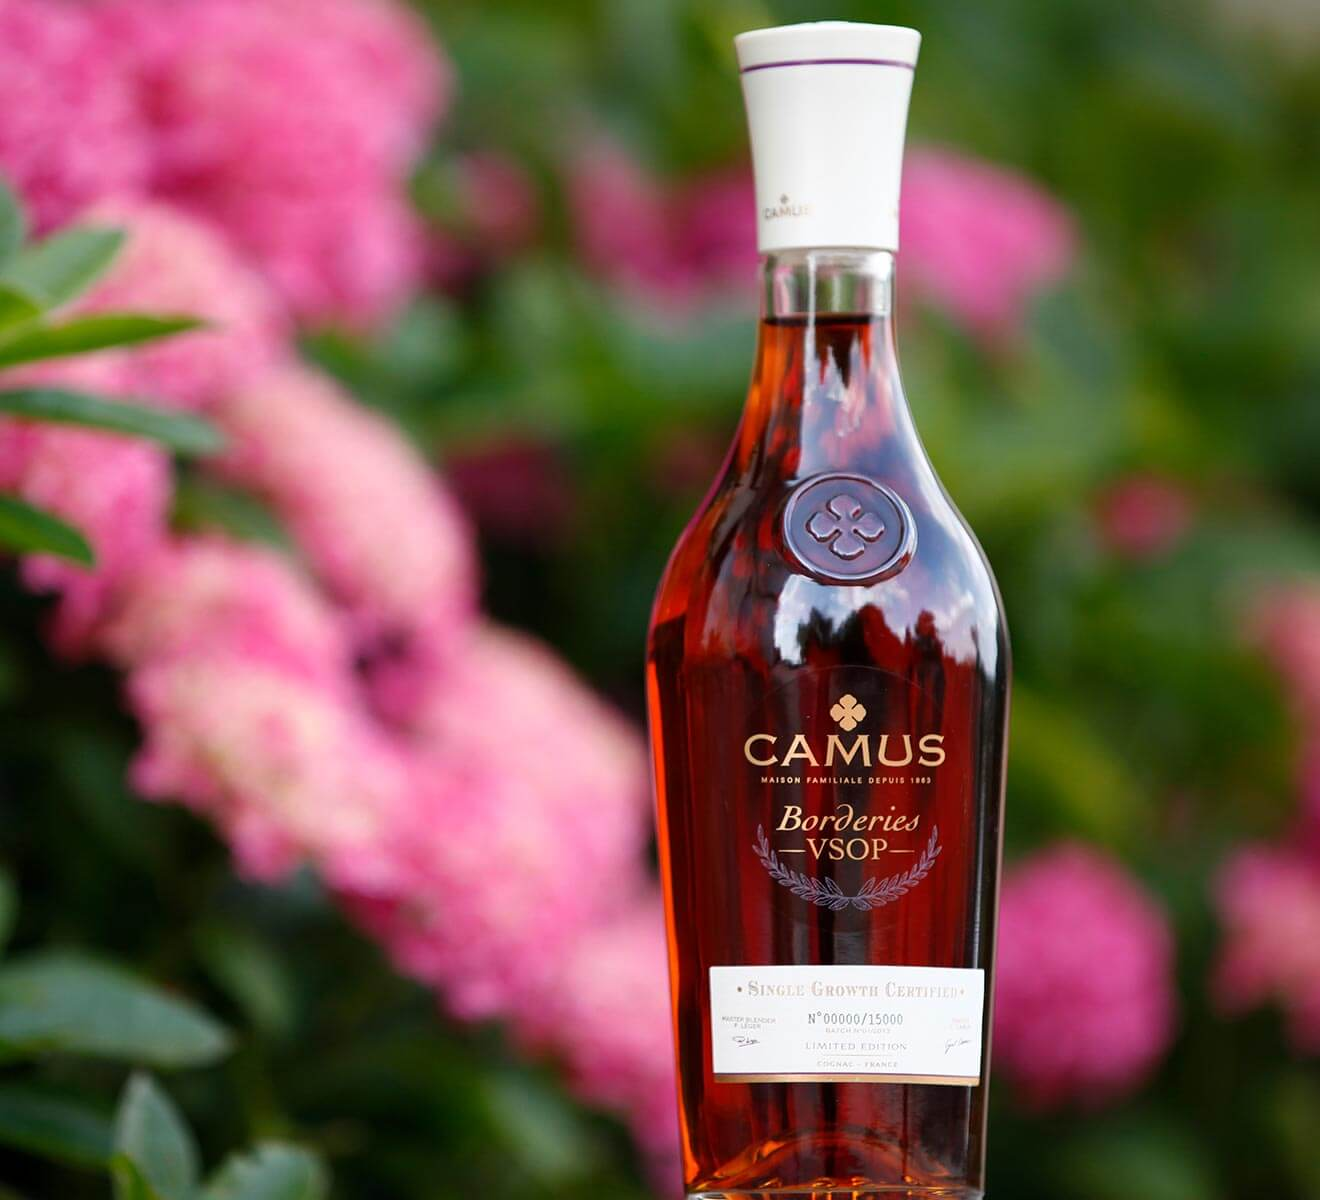 Camus Borderies VSOP bottle with garden background